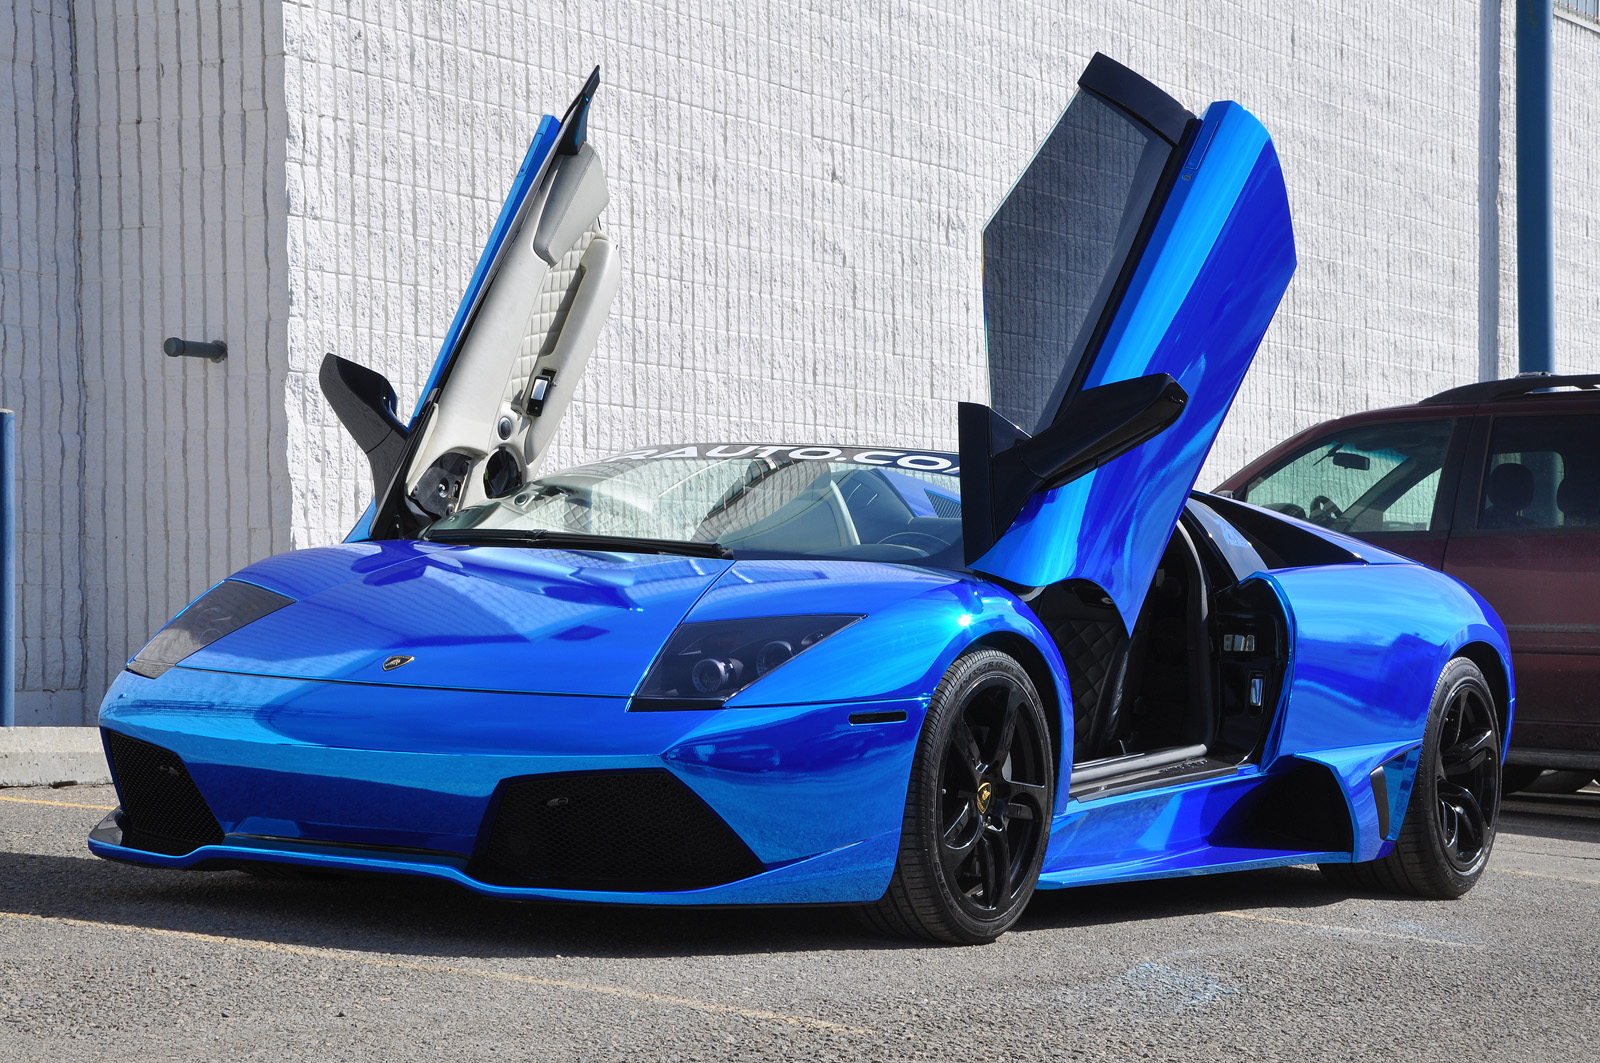 Incredible Chrome Blue Lamborghini Murcielago Gtspirit